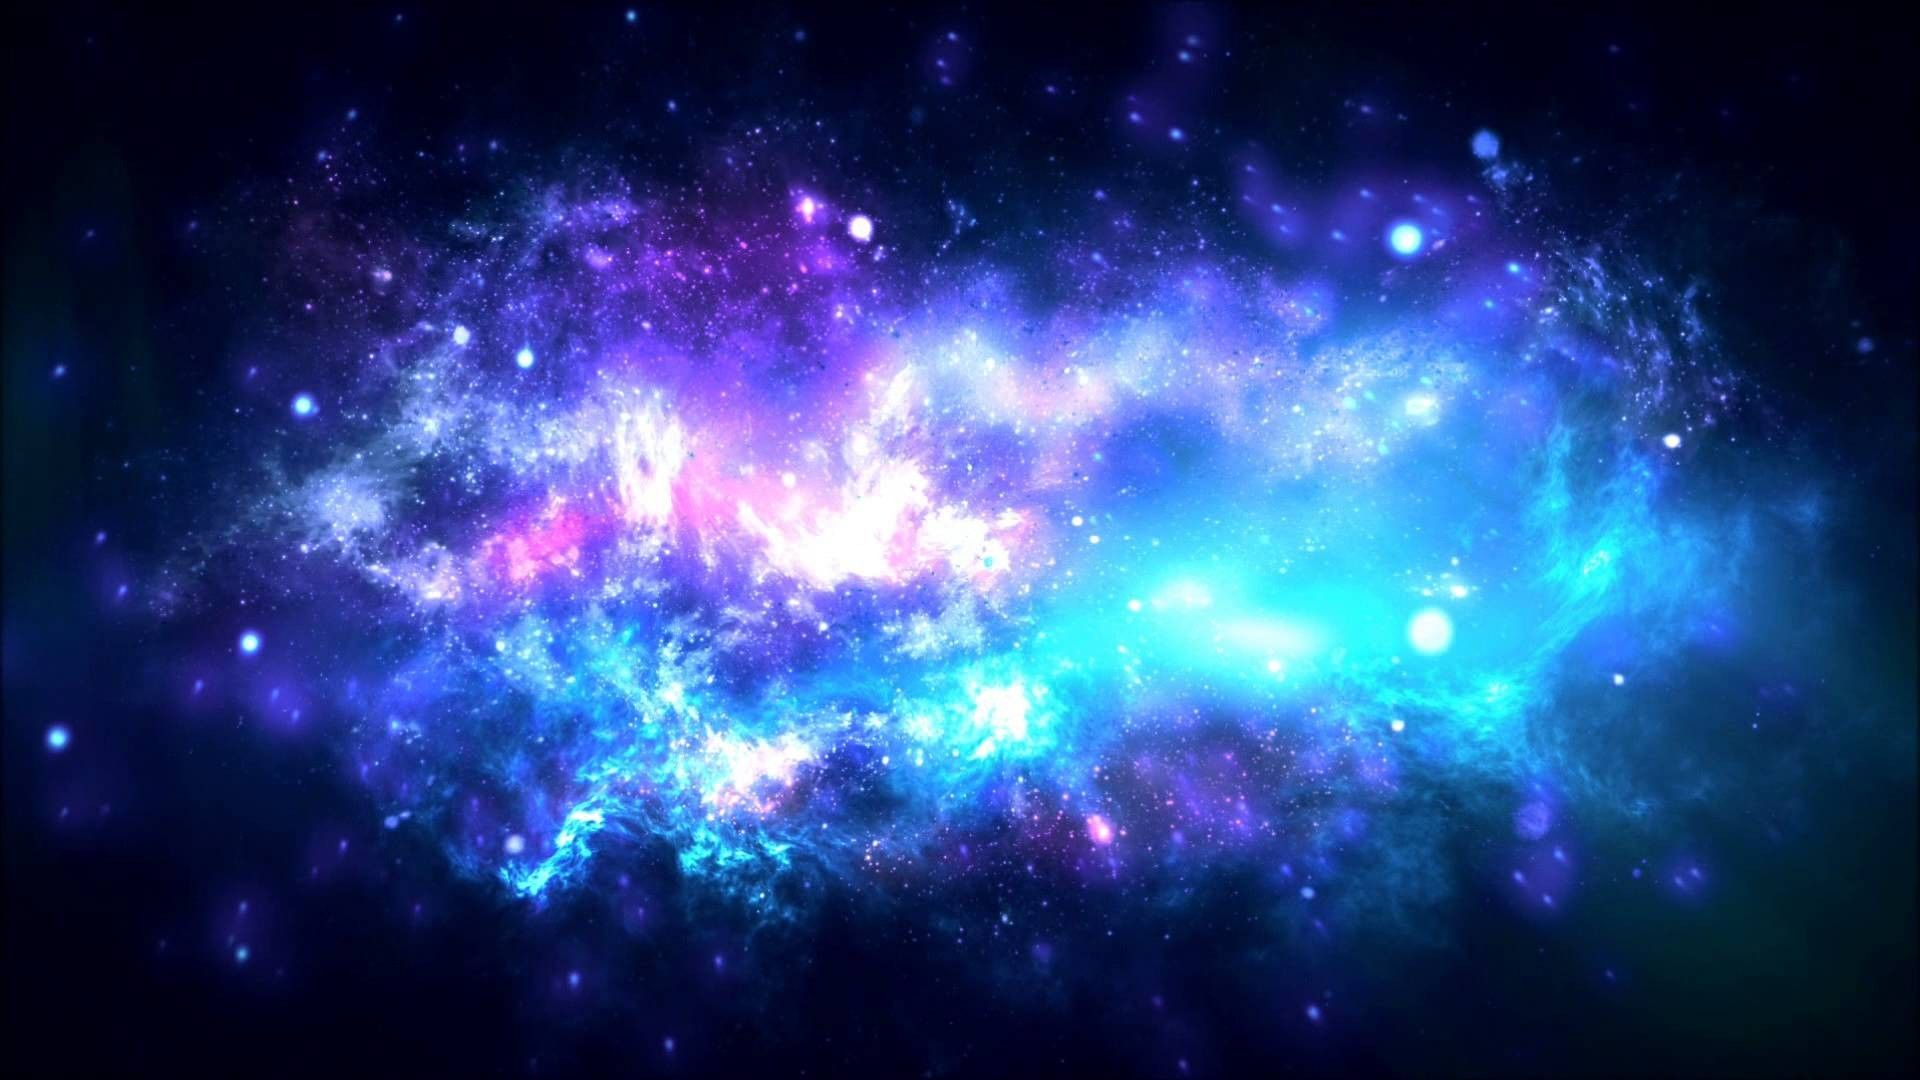 Galaxy Background Download Free Stunning Backgrounds In 2020 Cross Background Milky Way Pictures Galaxy Background